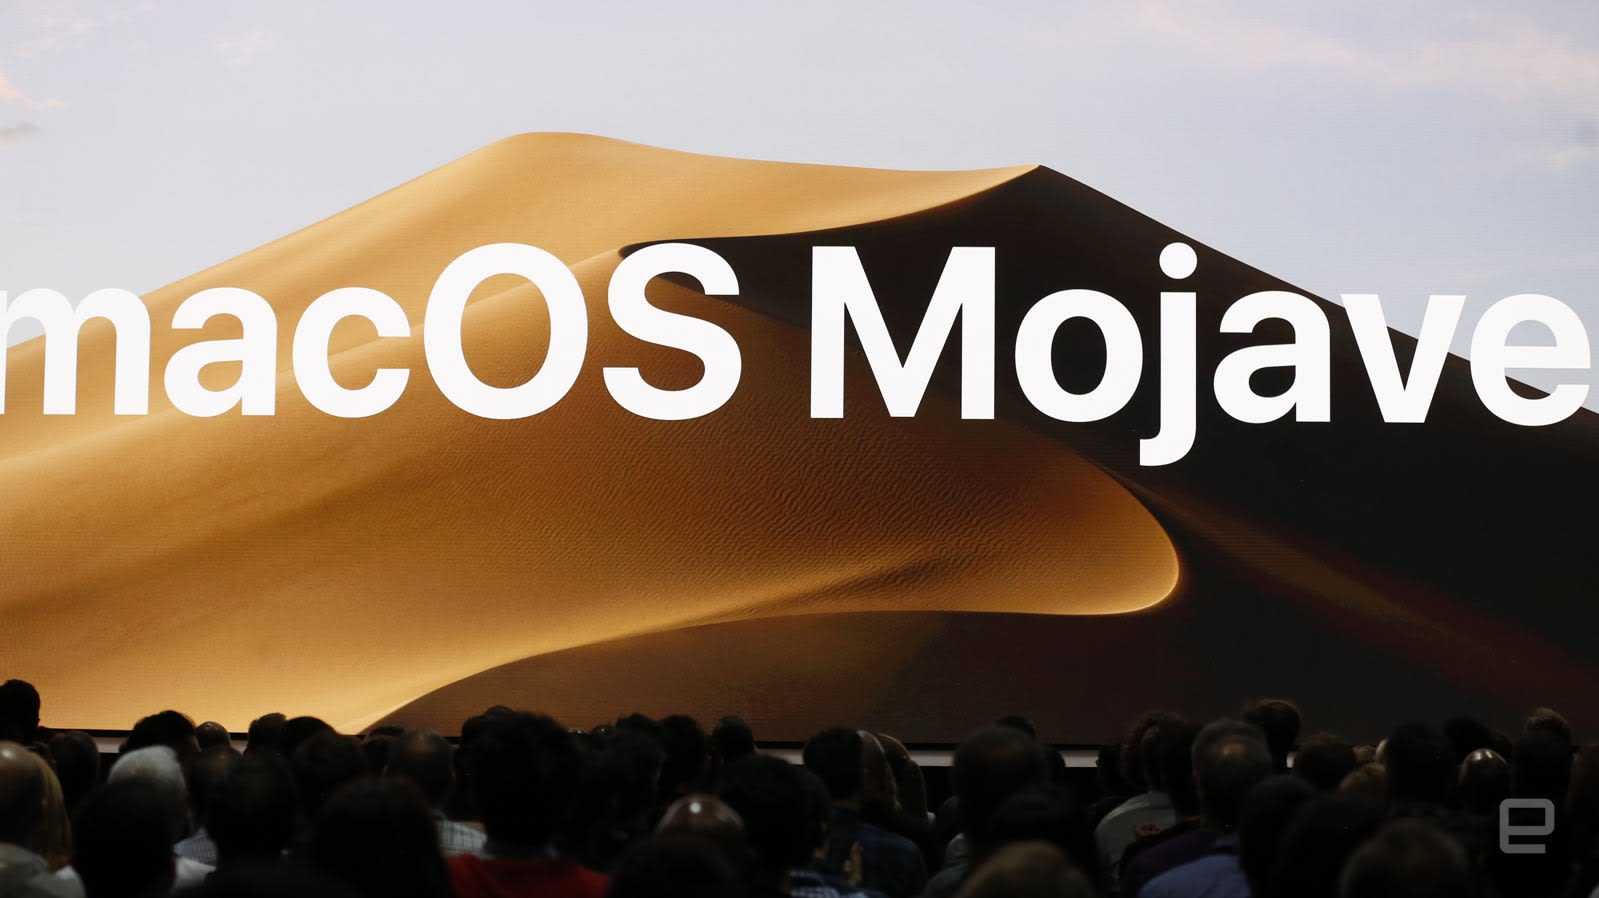 macOS Mojave adds dark mode and improved organization options